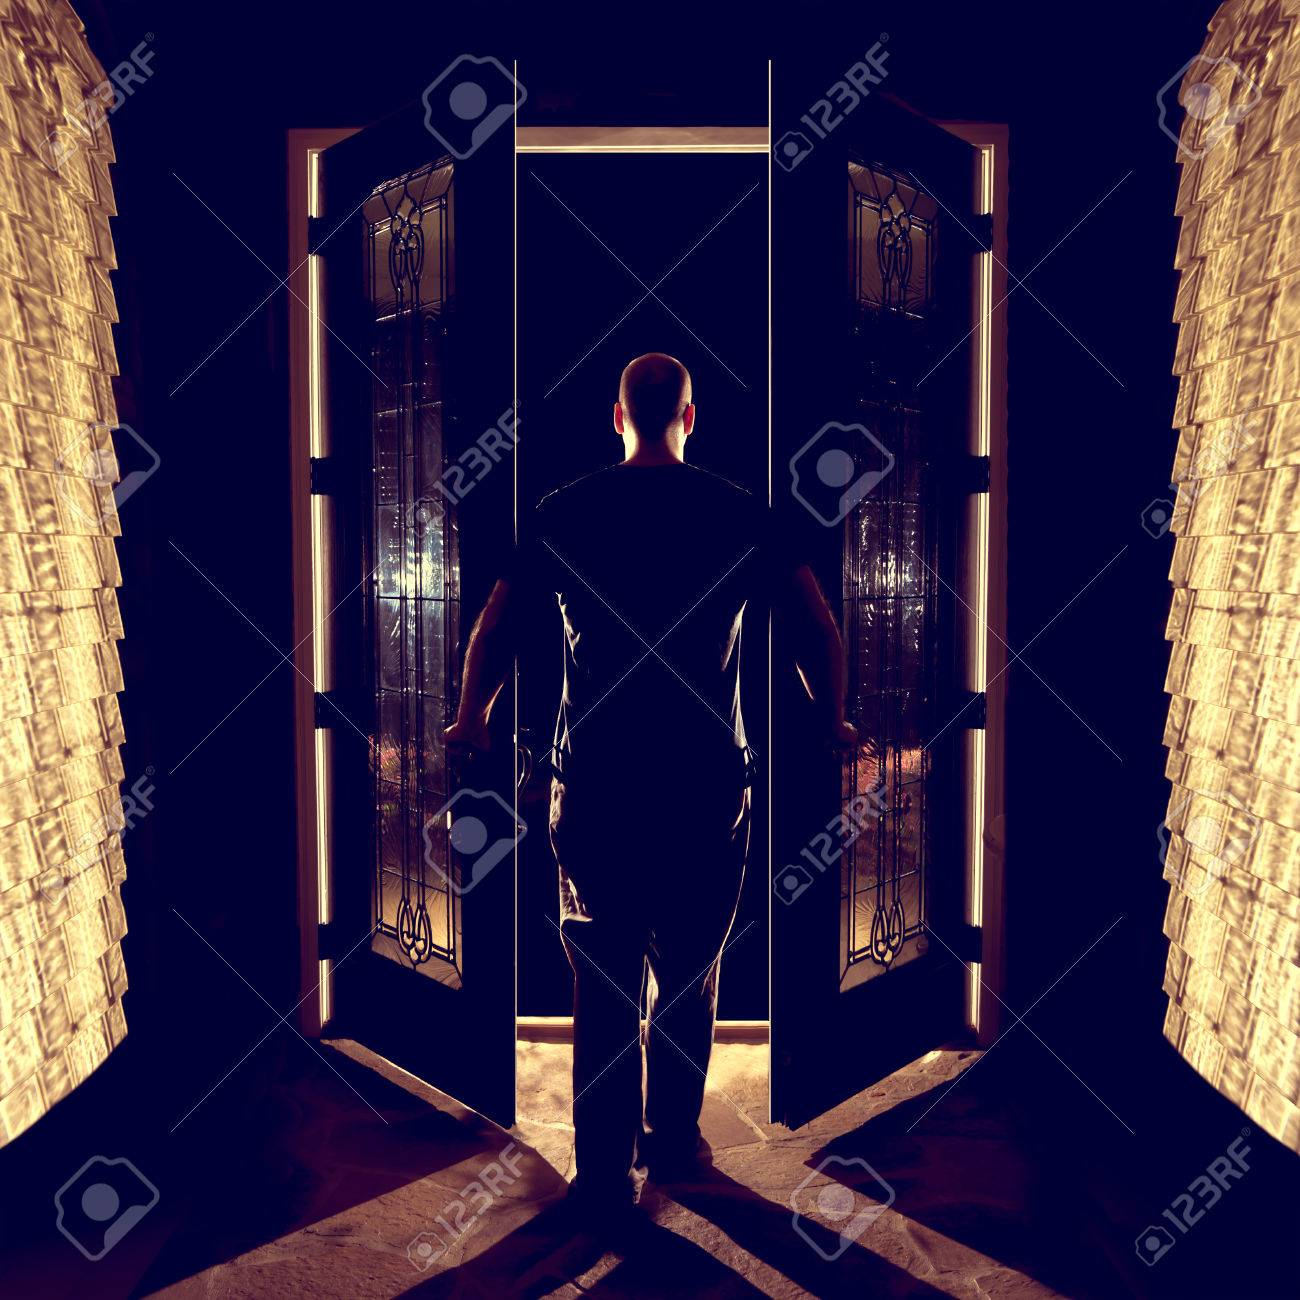 Man Opening Closing Front Double Entryway Doors With Glass In ...